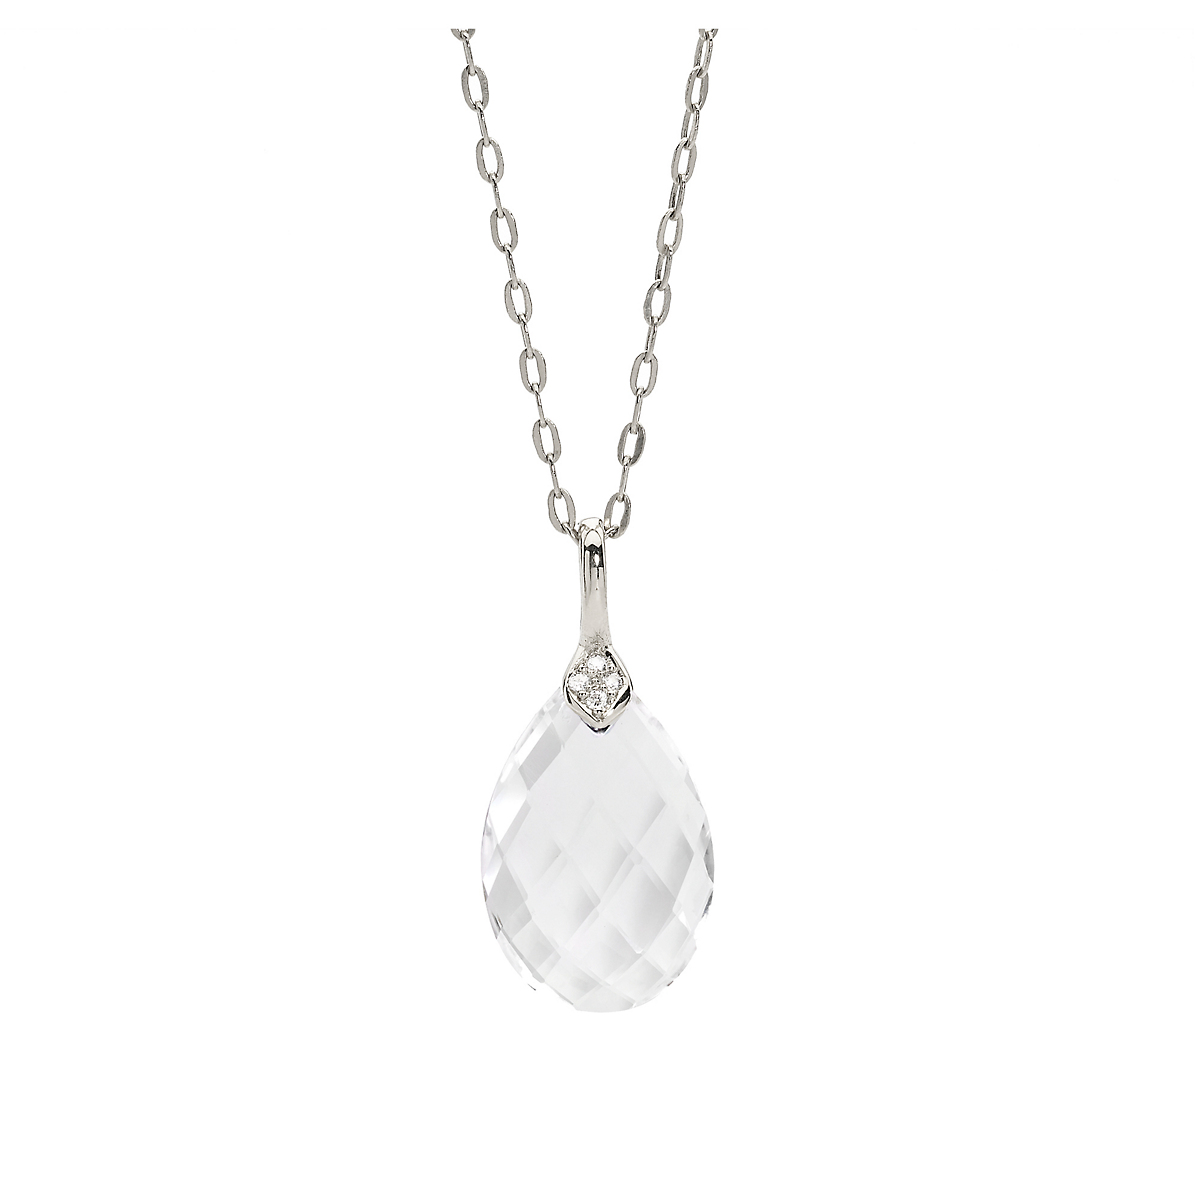 Elizabeth Showers Quartz & White Sapphire Eliza Droplet Silver Necklace